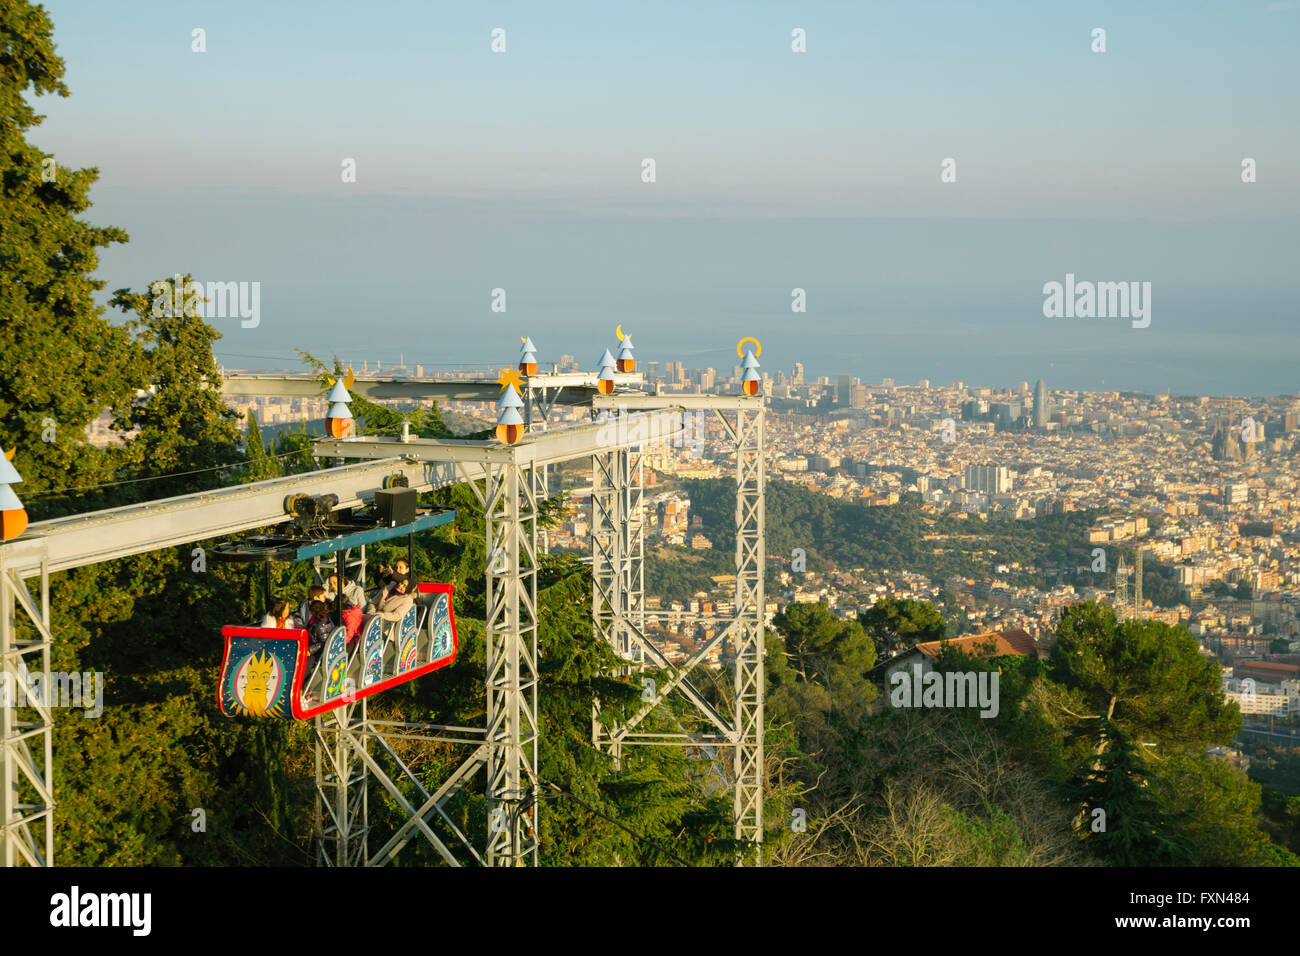 Tibidabo amusement park, with people having fun with the roller coaster in Barcelona - Stock Image